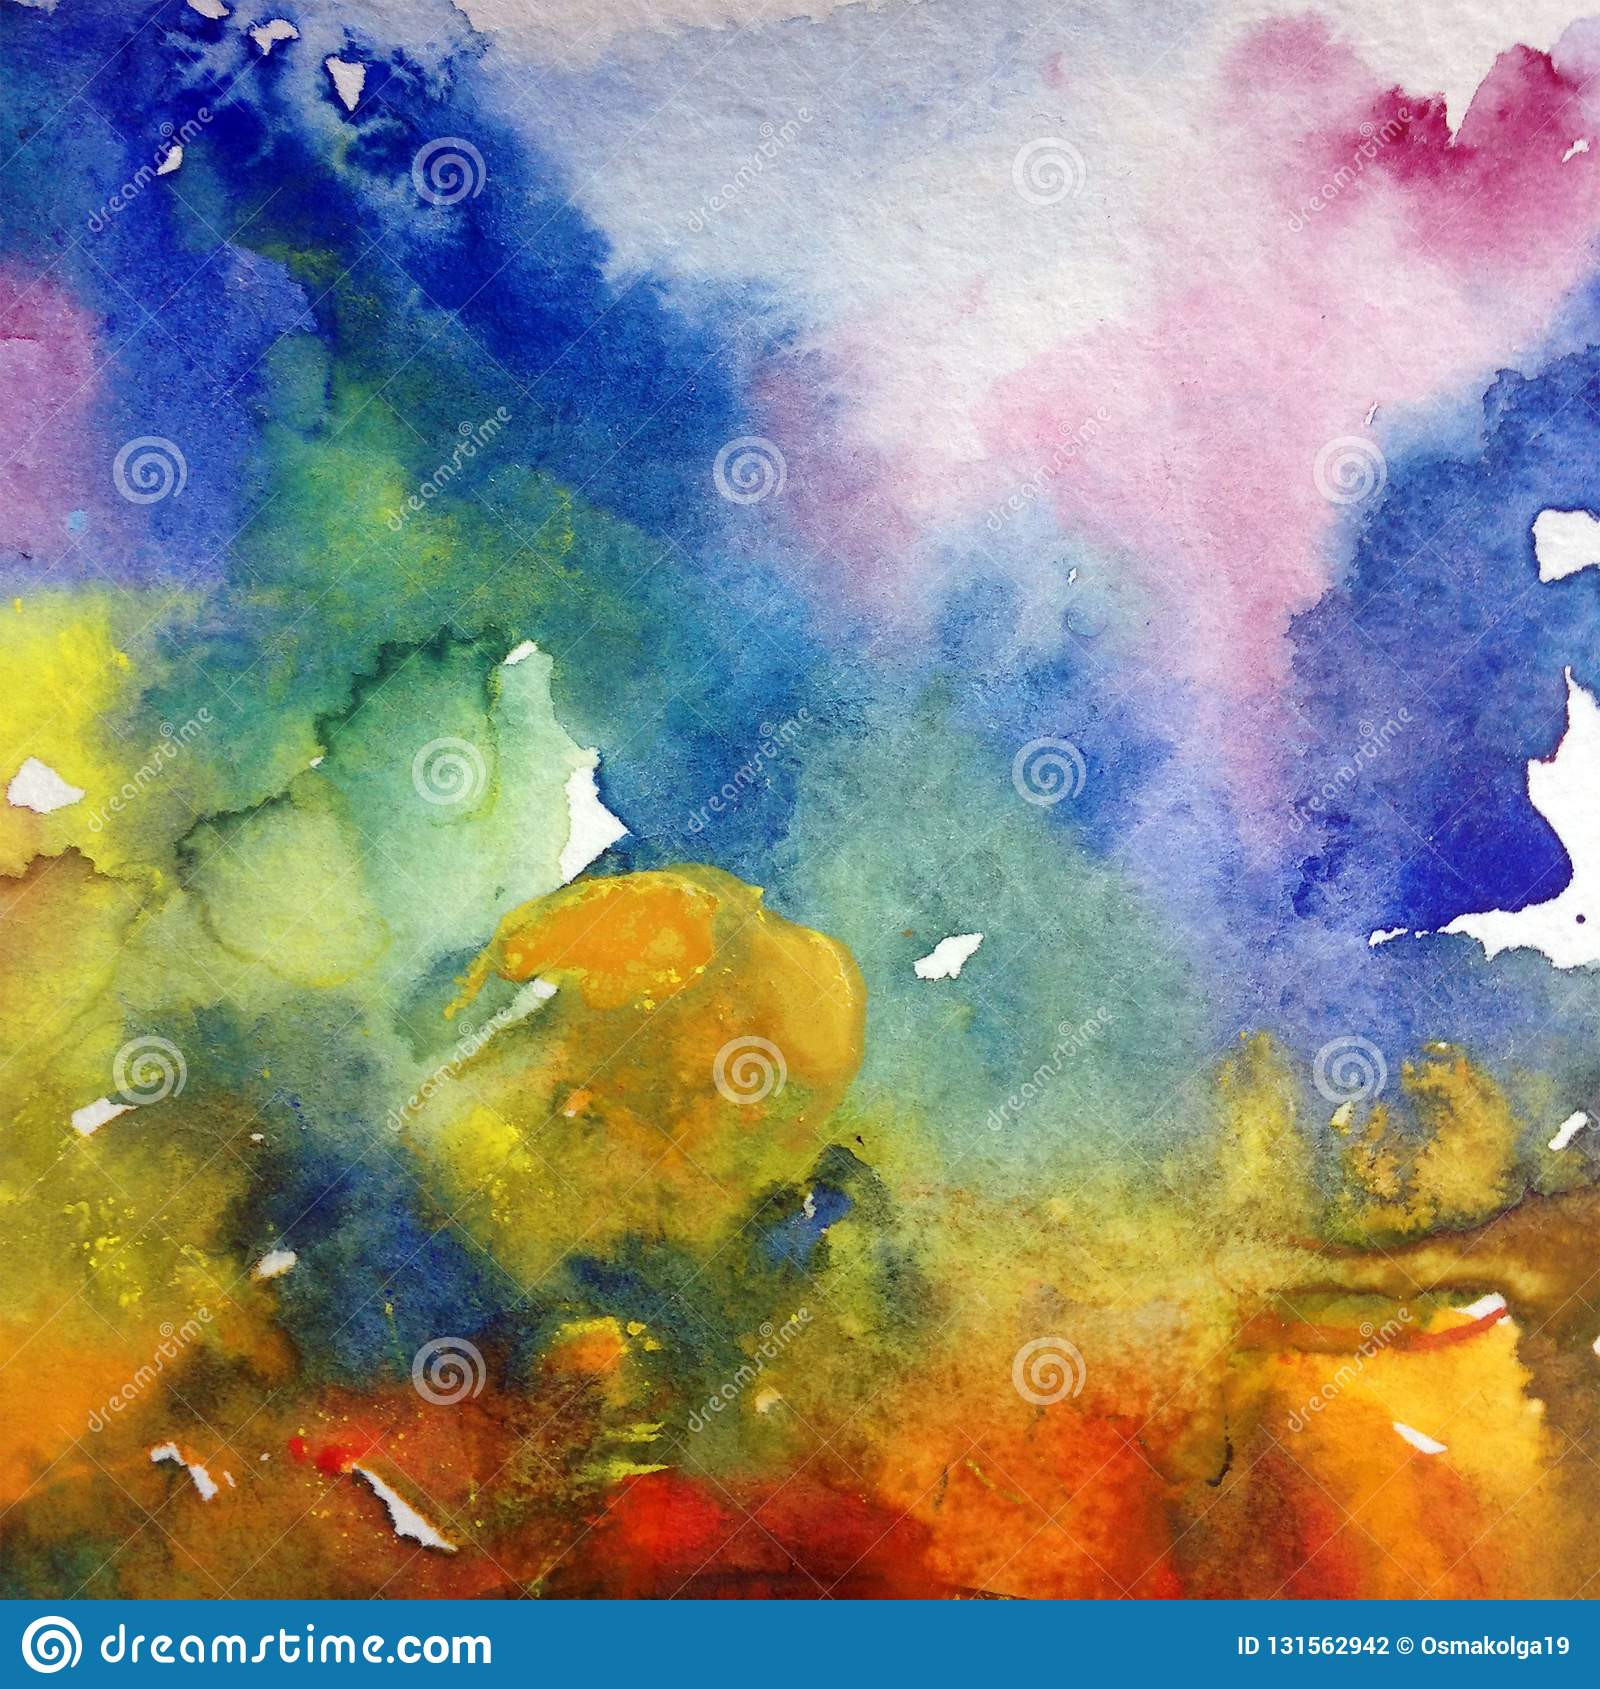 Watercolor Abstract Bright Colorful Textural Background Handmade